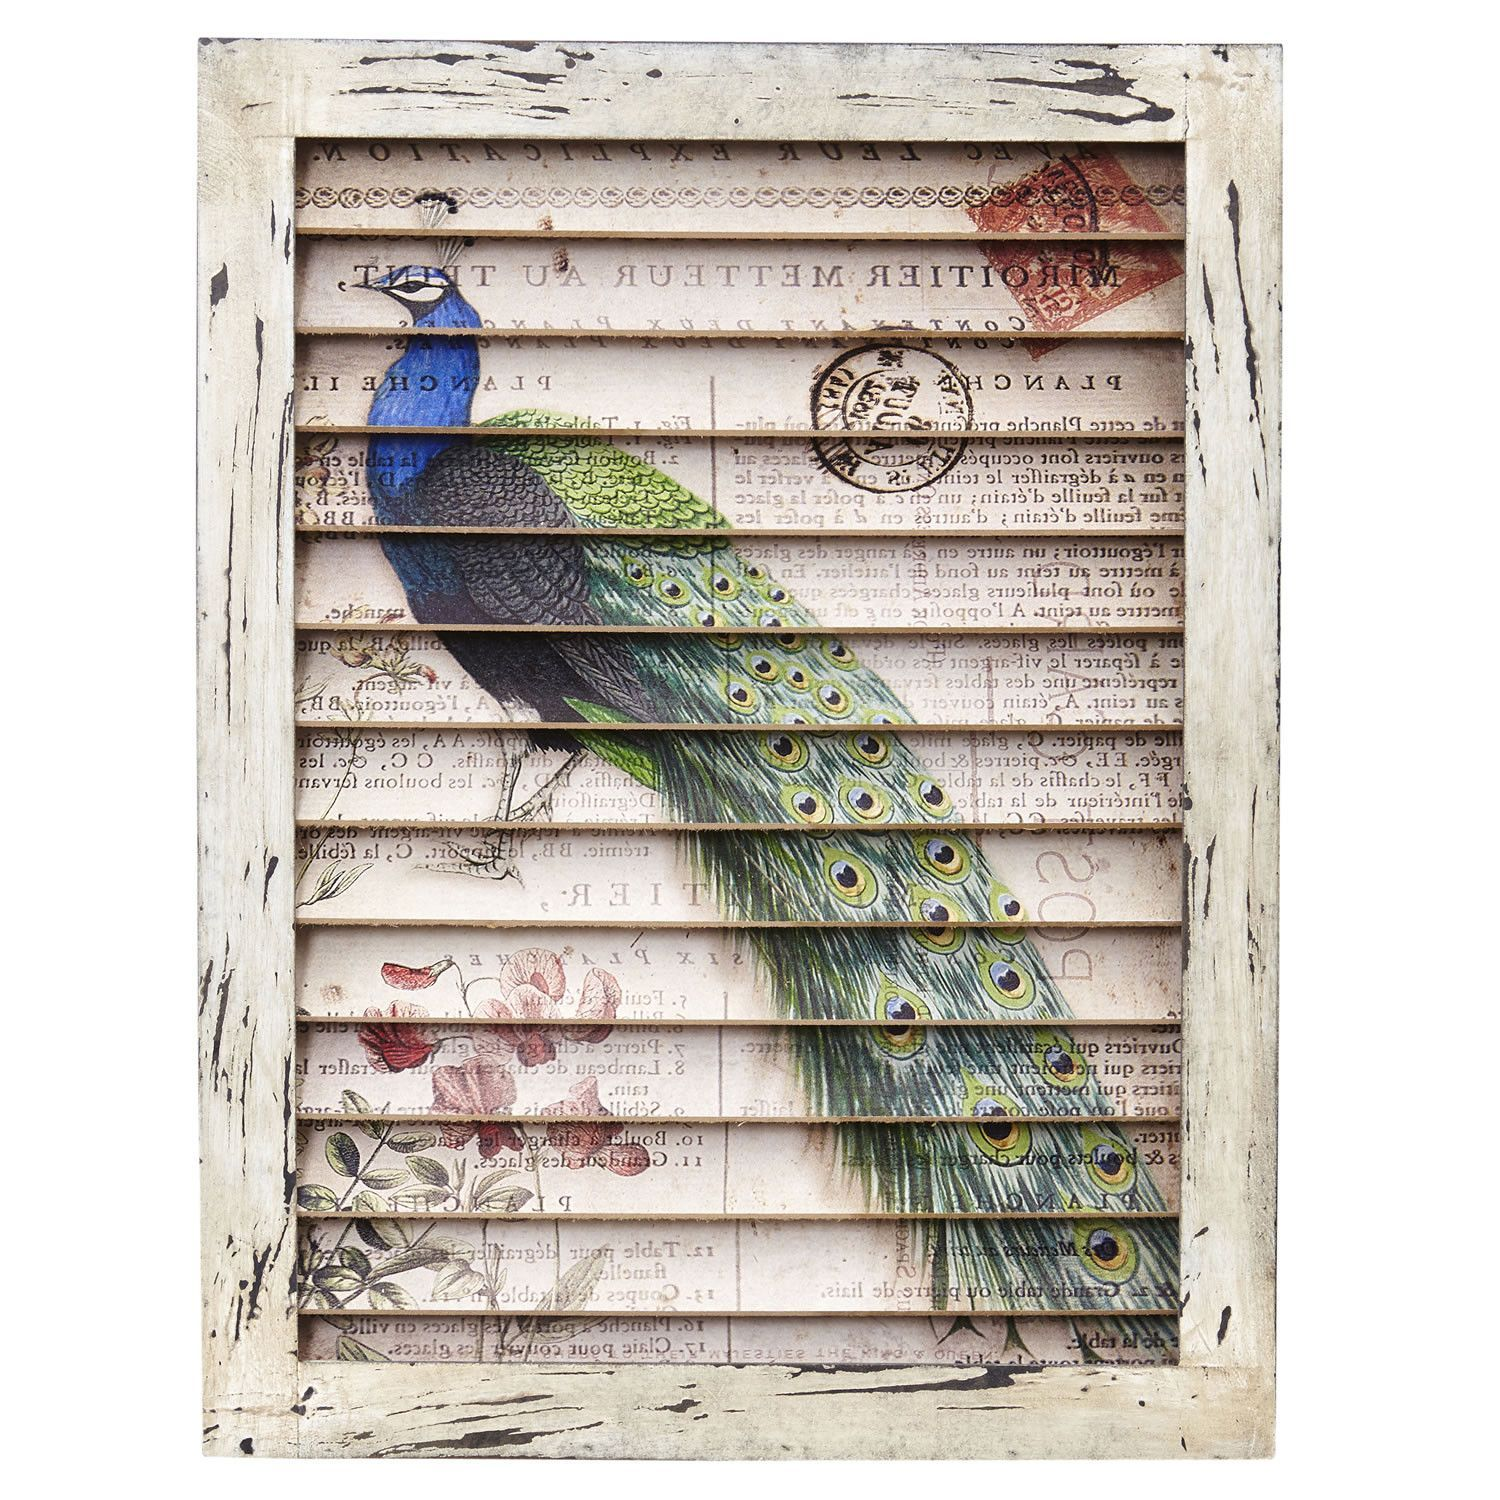 Romantic Florals And Vintage Calligraphy Combine To Turn This Window Shutter Into A Work Of Art Printed On We Shutter Wall Decor Shutter Wall Peacock Wall Art